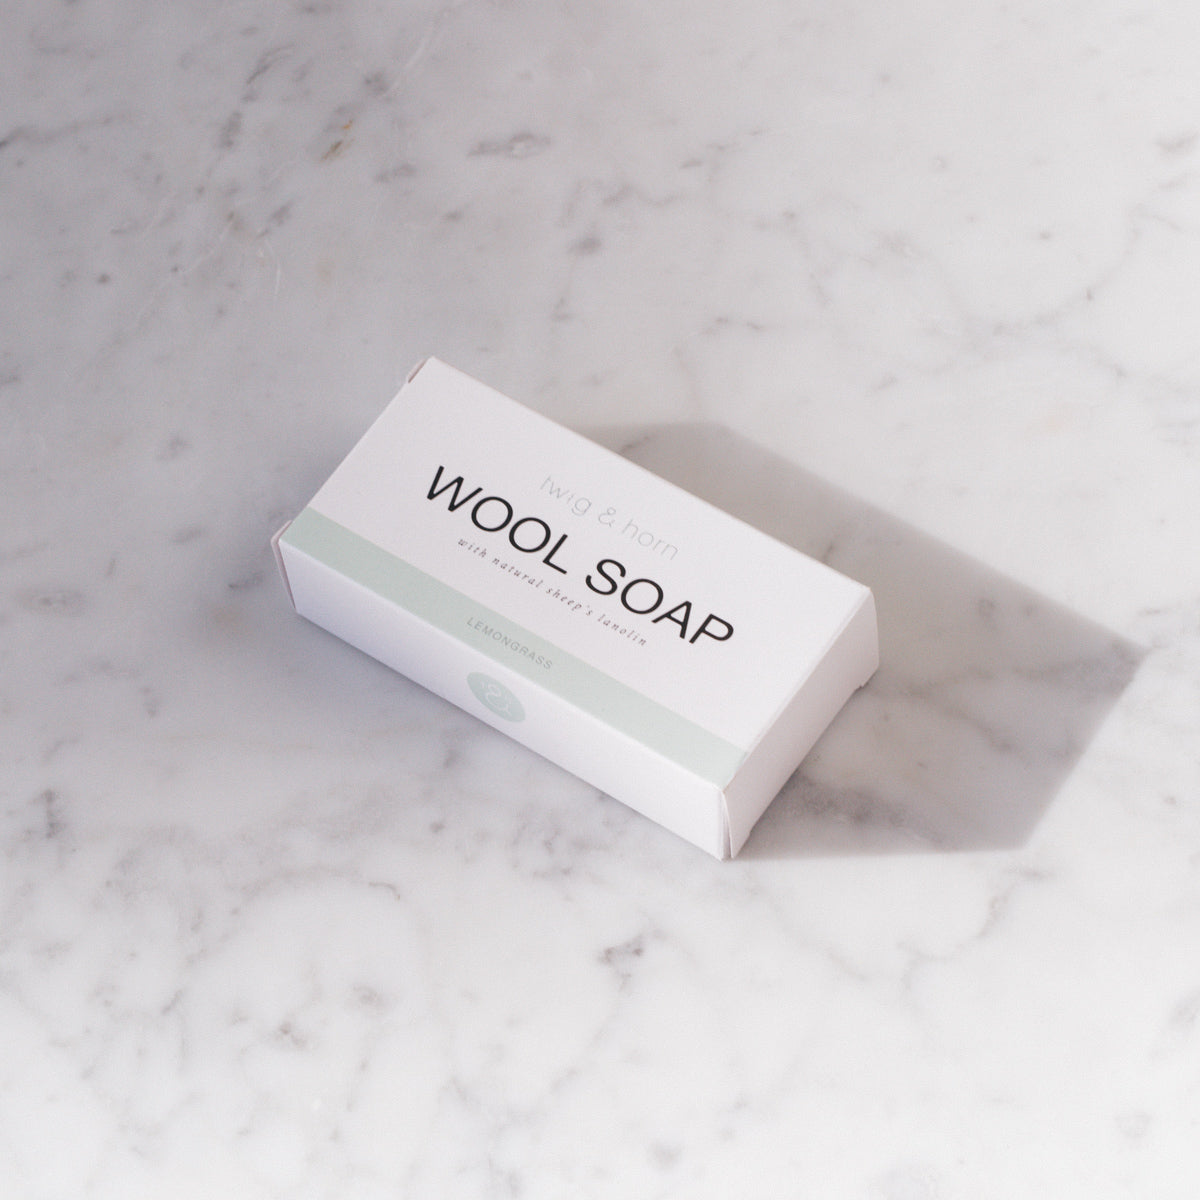 Wool Soap Bar